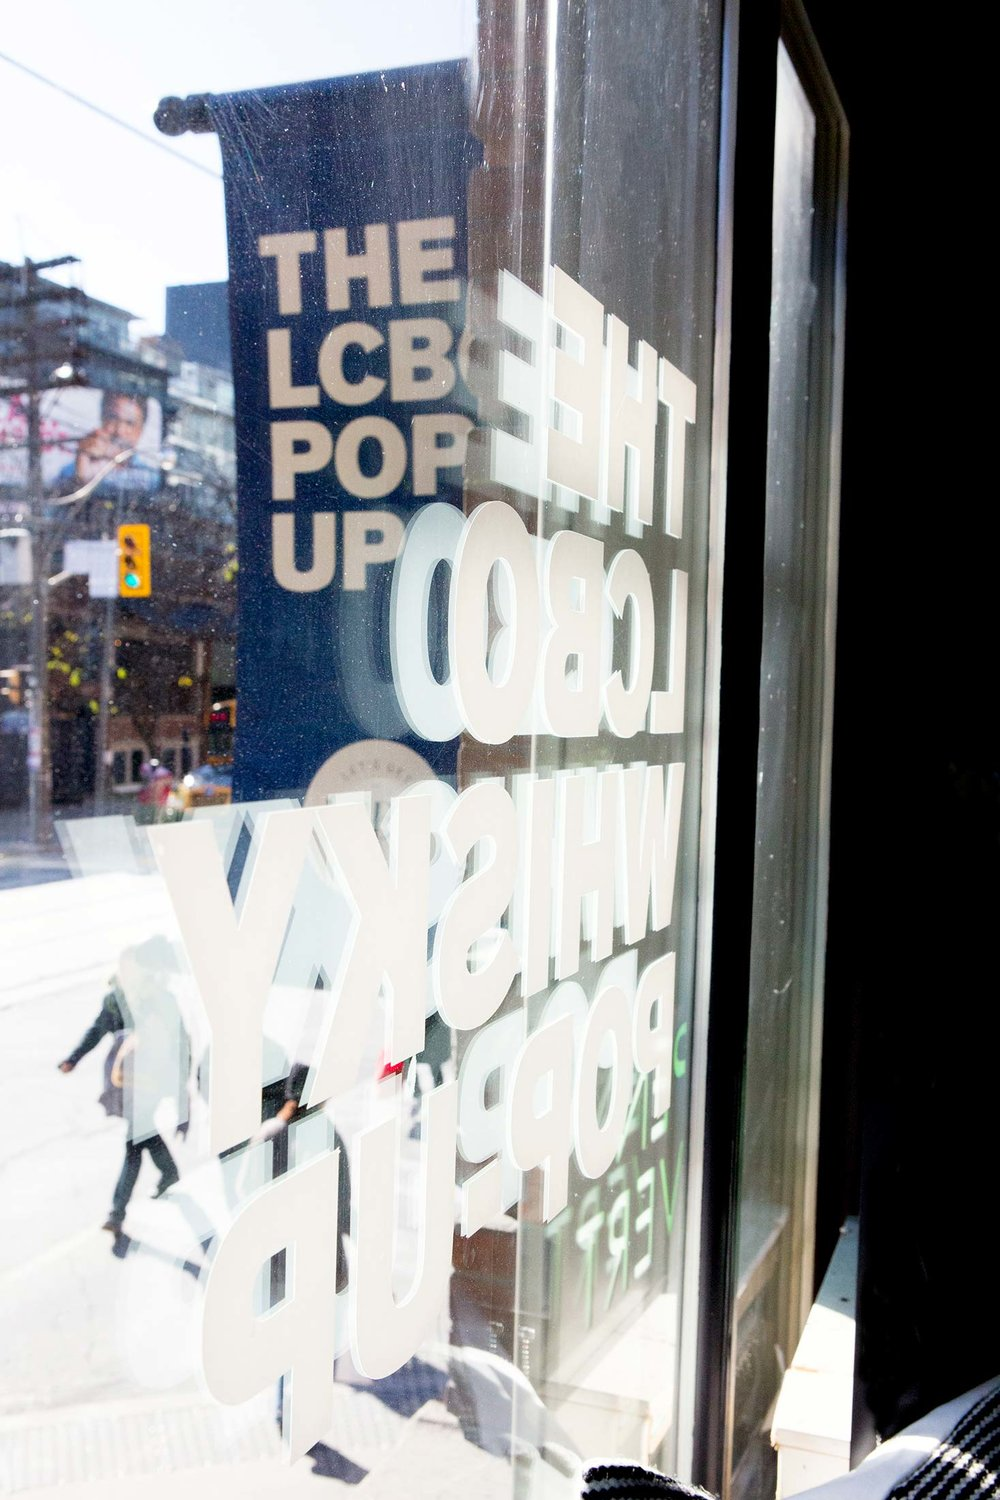 LCBO-whisky-pop-up-signage-Toronto-Sputnik-Design-Partners.jpg